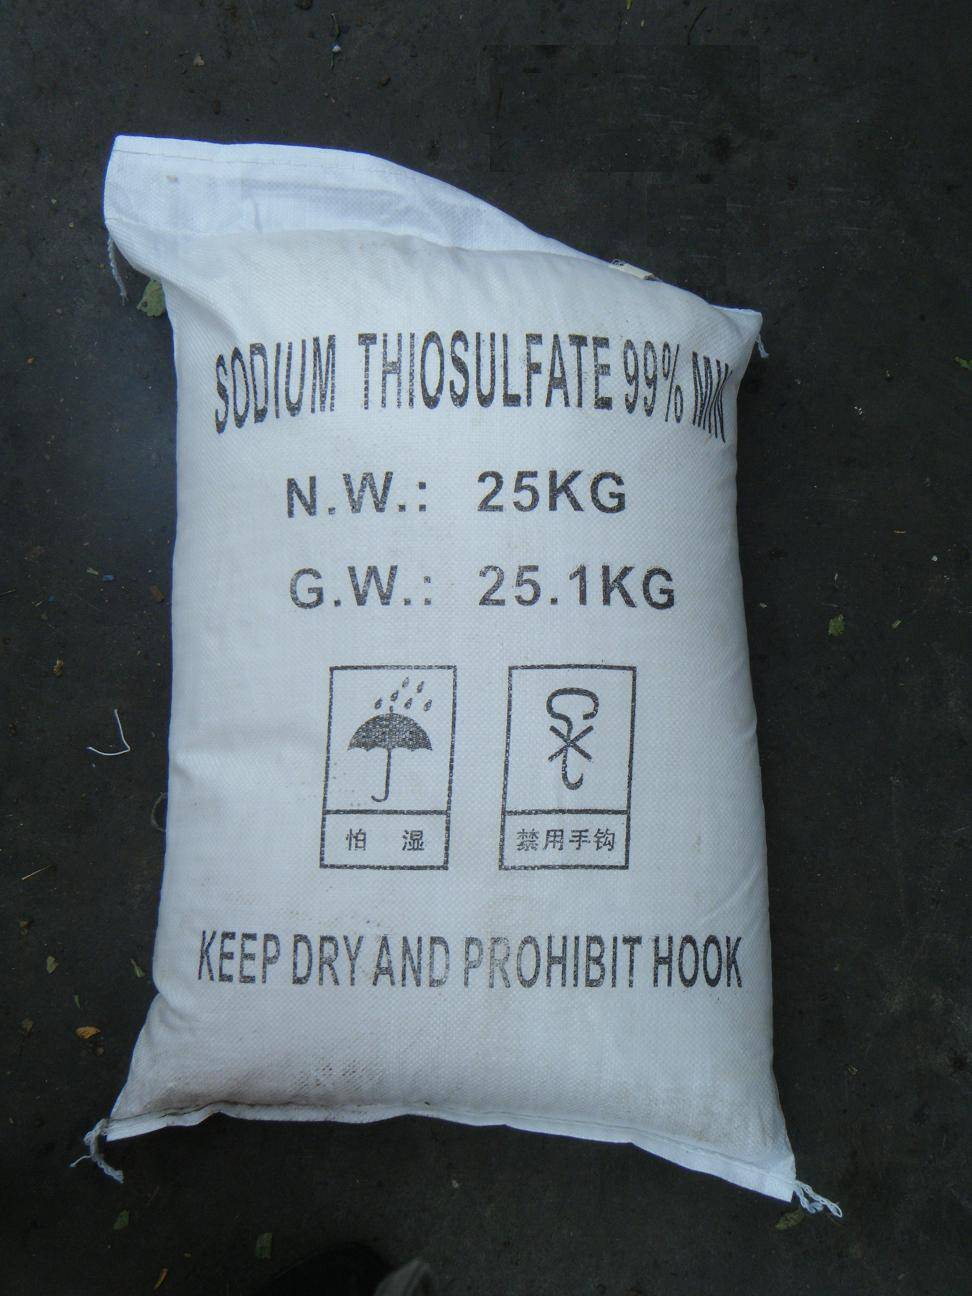 China Lowest Price of Sodium Thiosulphate(Thiosulfate) 99%min